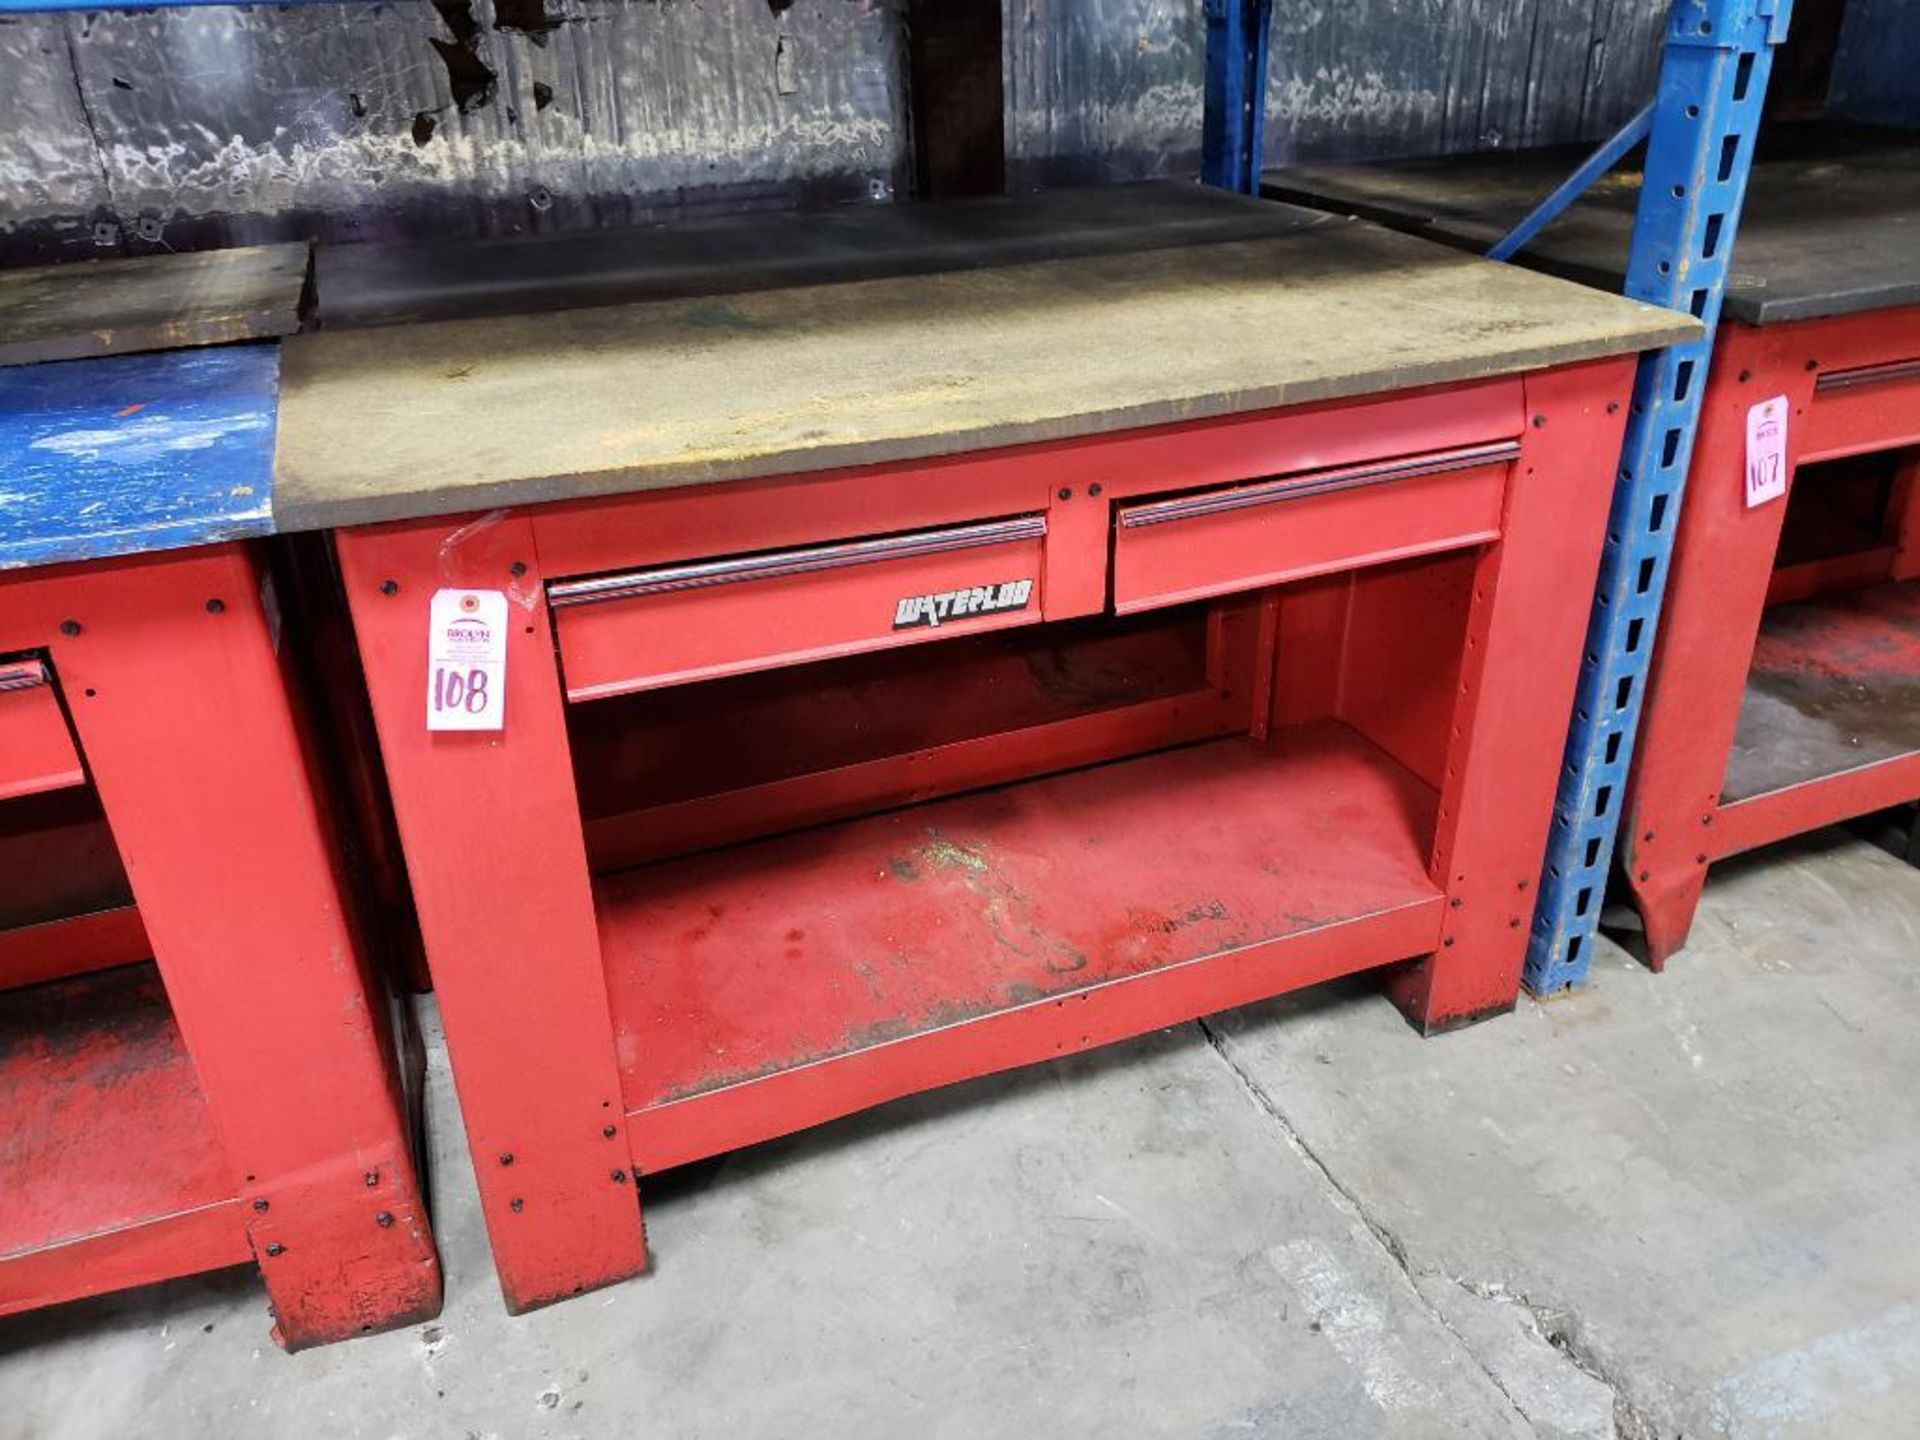 Lot 108 - Qty 2 - Waterloo workbenches.